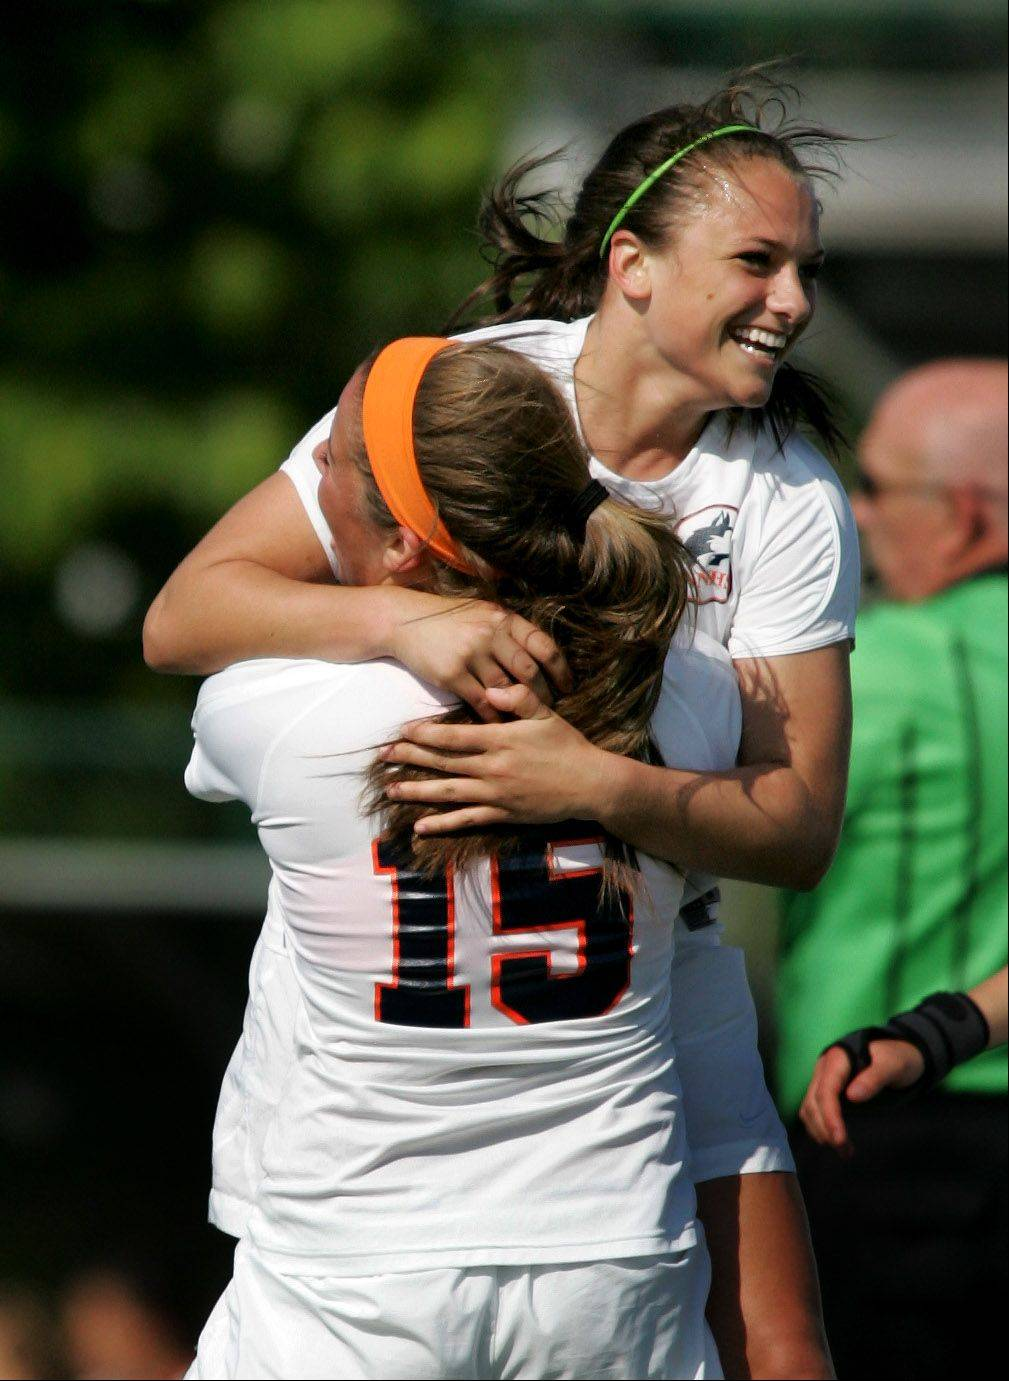 Bev Horne/bhorne@dailyherald.com ¬ Christa Szalach of Naperville North gets a hug from teammate Cora Climo (15) after her goal in the first half against Naperville Central in Class 3A Waubonsie Valley sectional semifinal girls soccer Tuesday in Aurora.